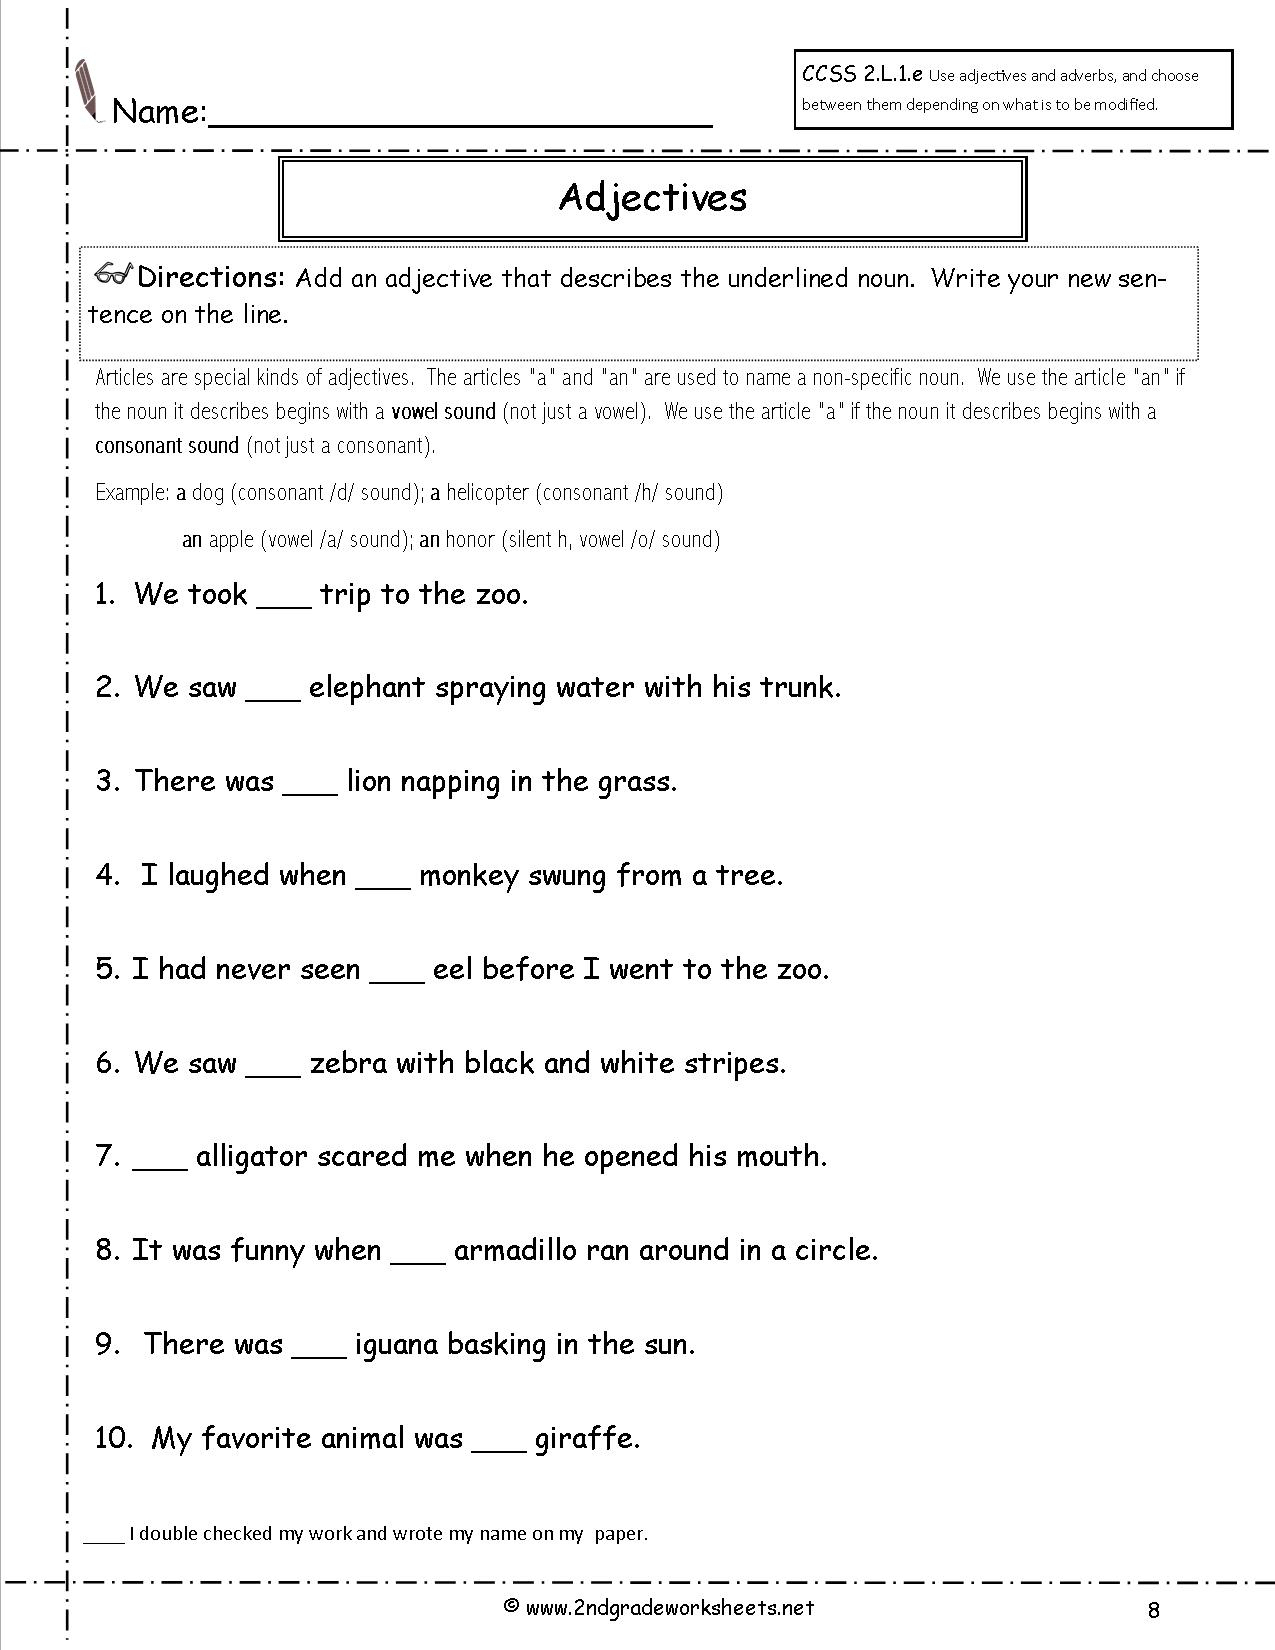 Free Printable Second Grade Worksheets » High School Worksheets | Free Printable Worksheets For Highschool Students